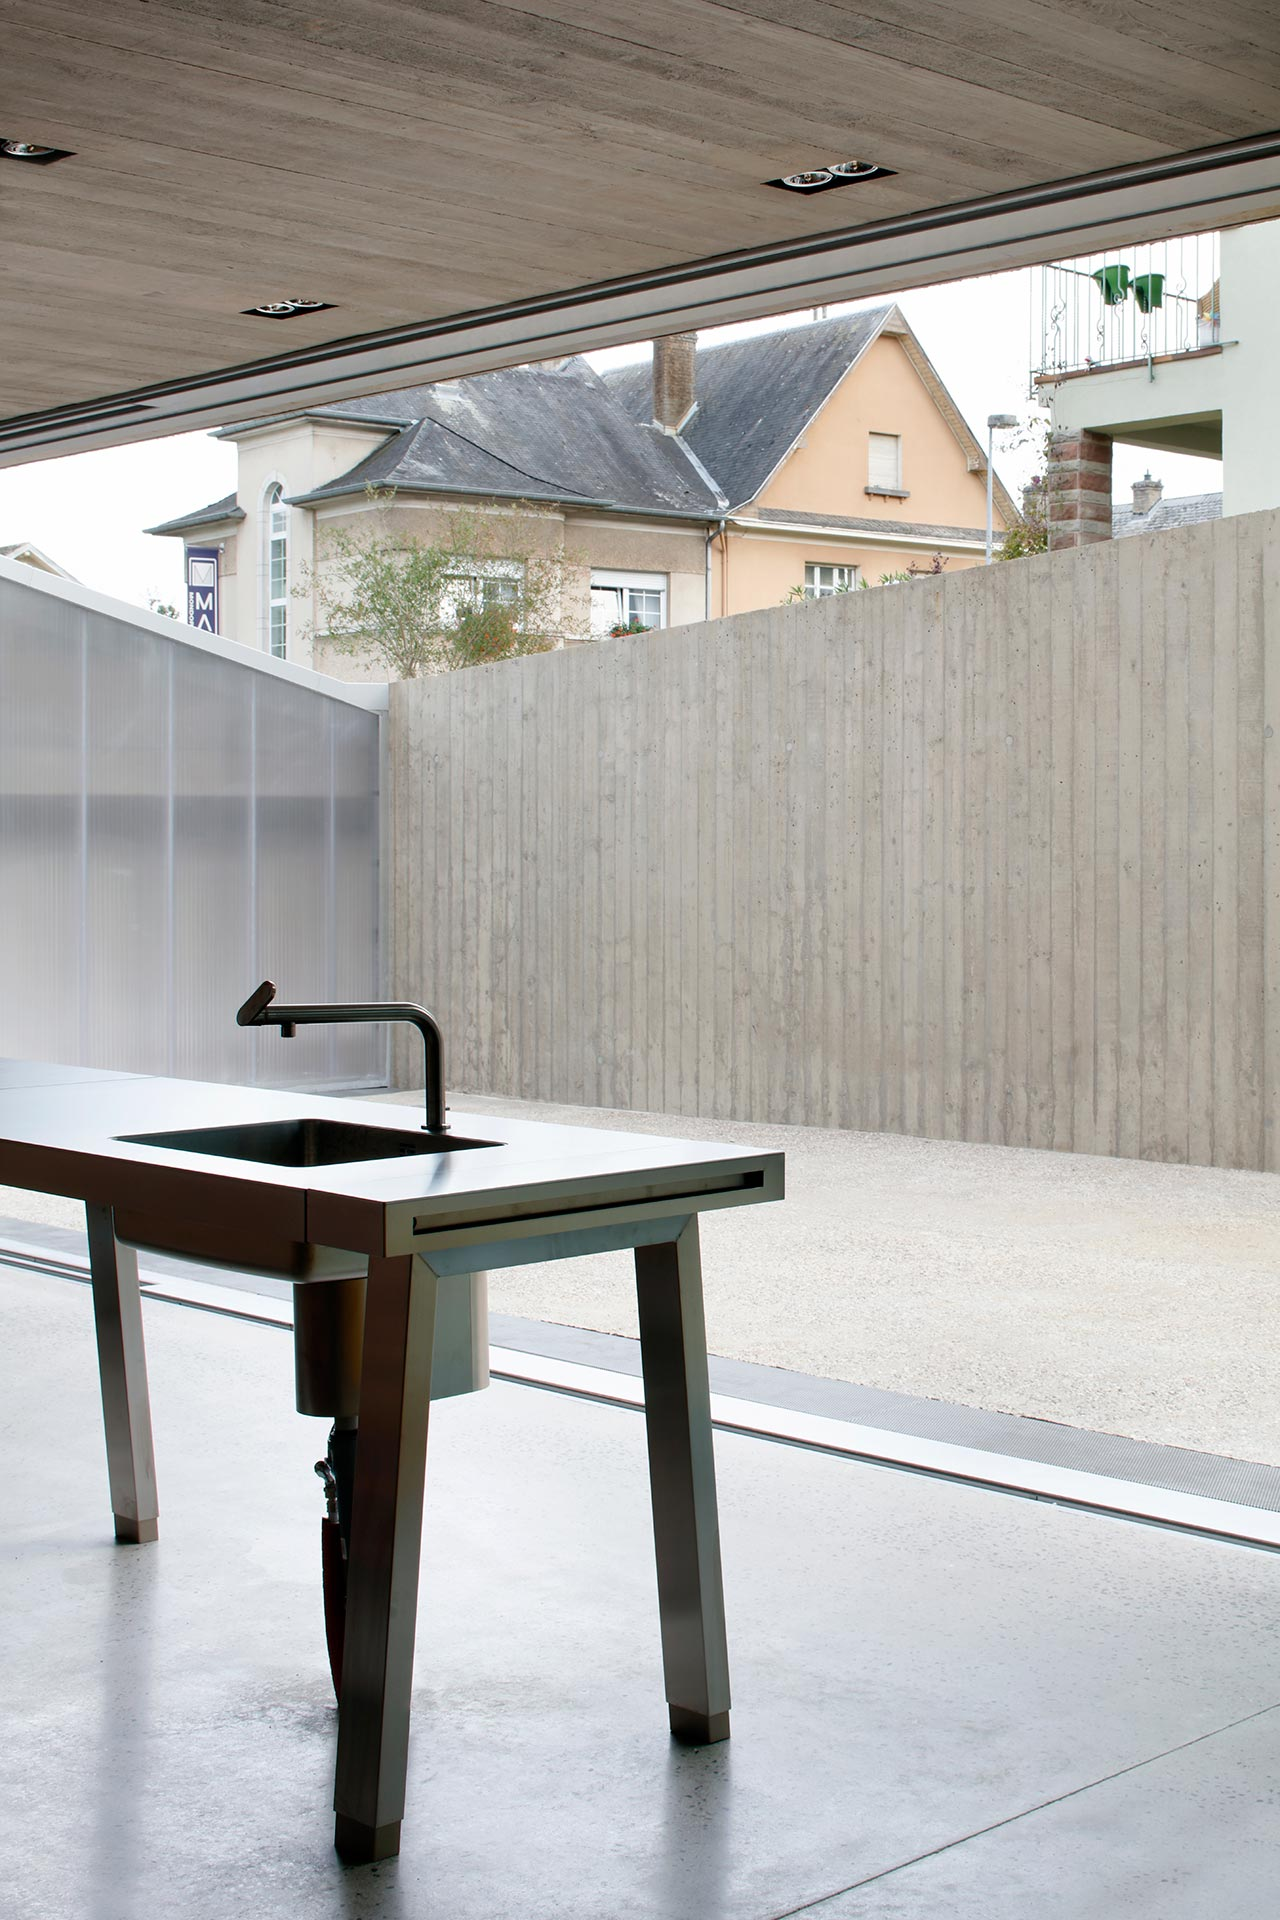 The kitchen island is minimalist and stripped down to minimal